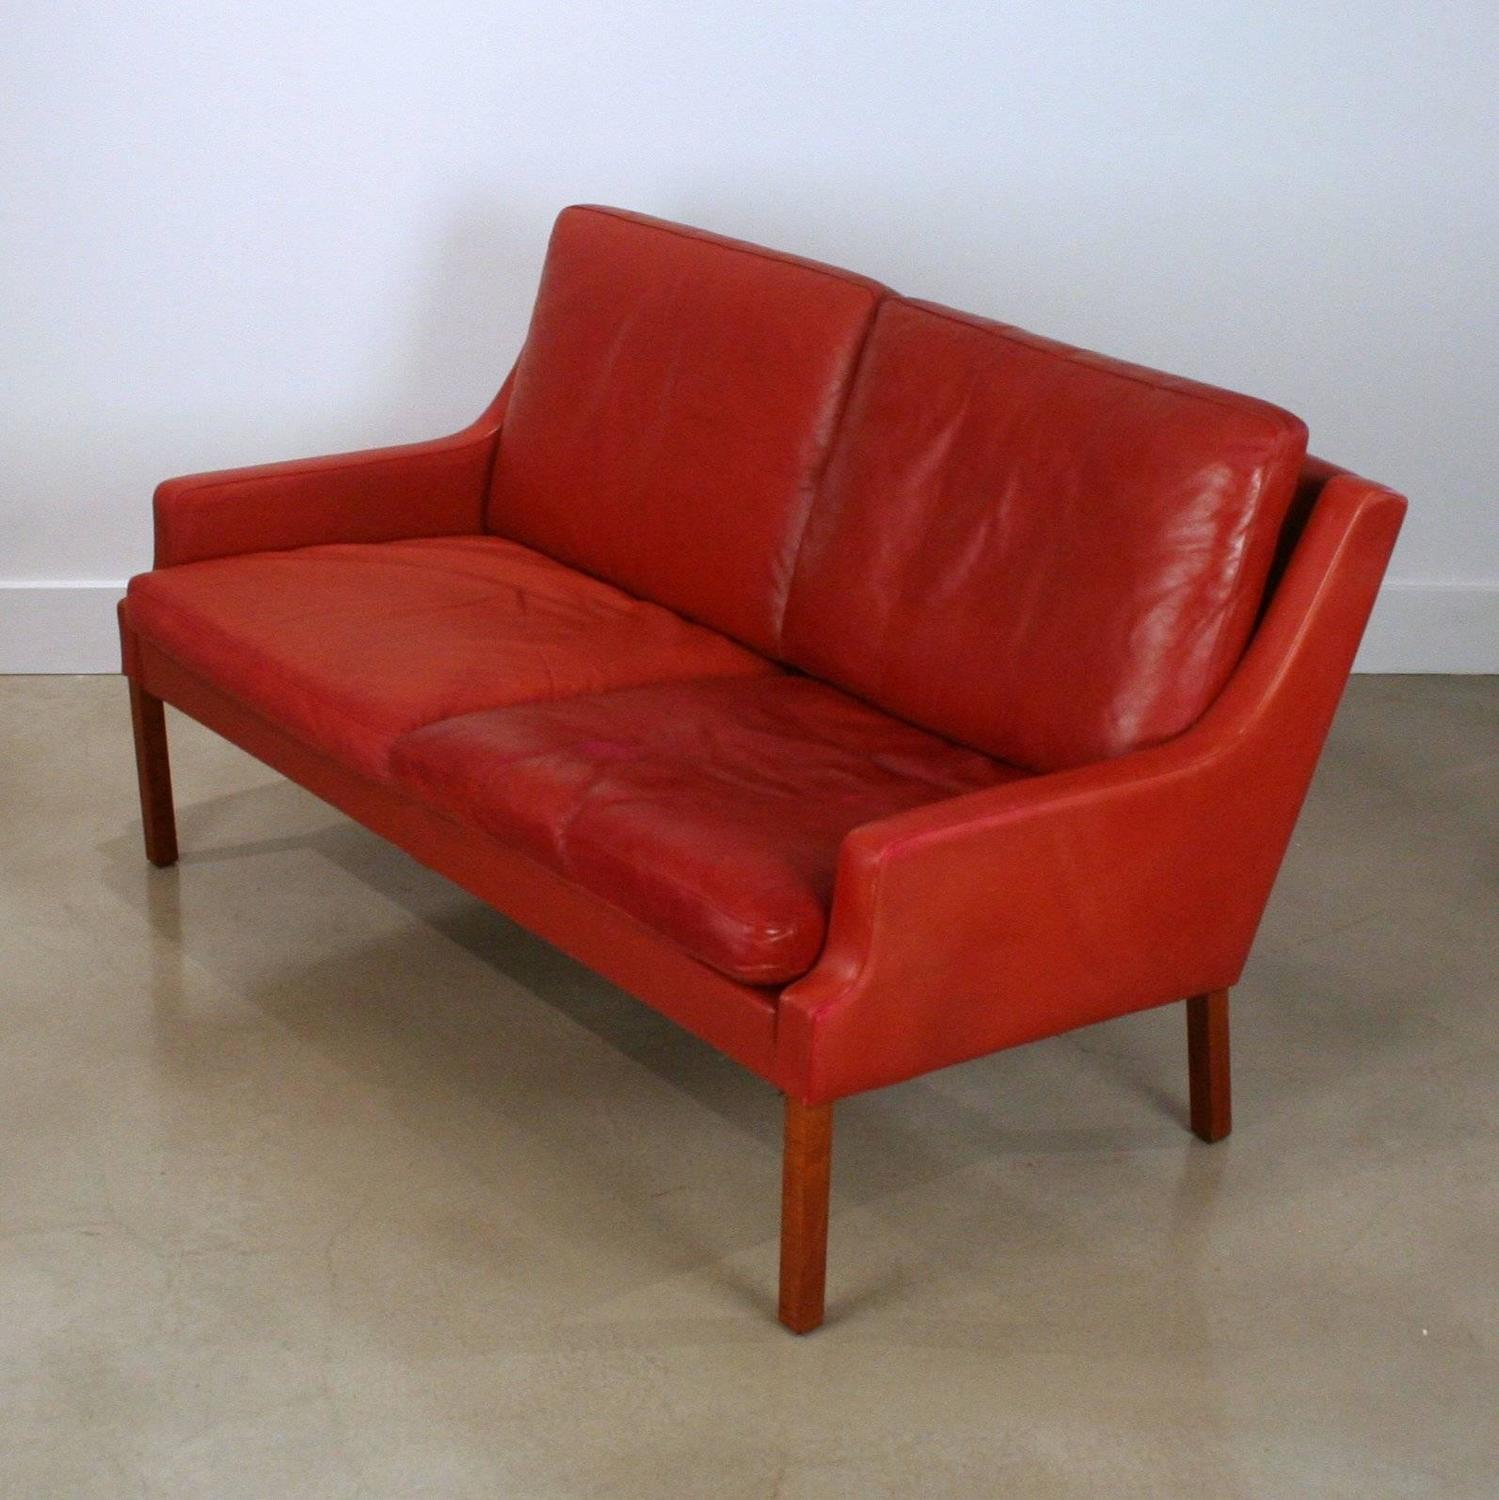 red leather two seater sofa ashley furniture kinlock charcoal vintage danish seat at 1stdibs